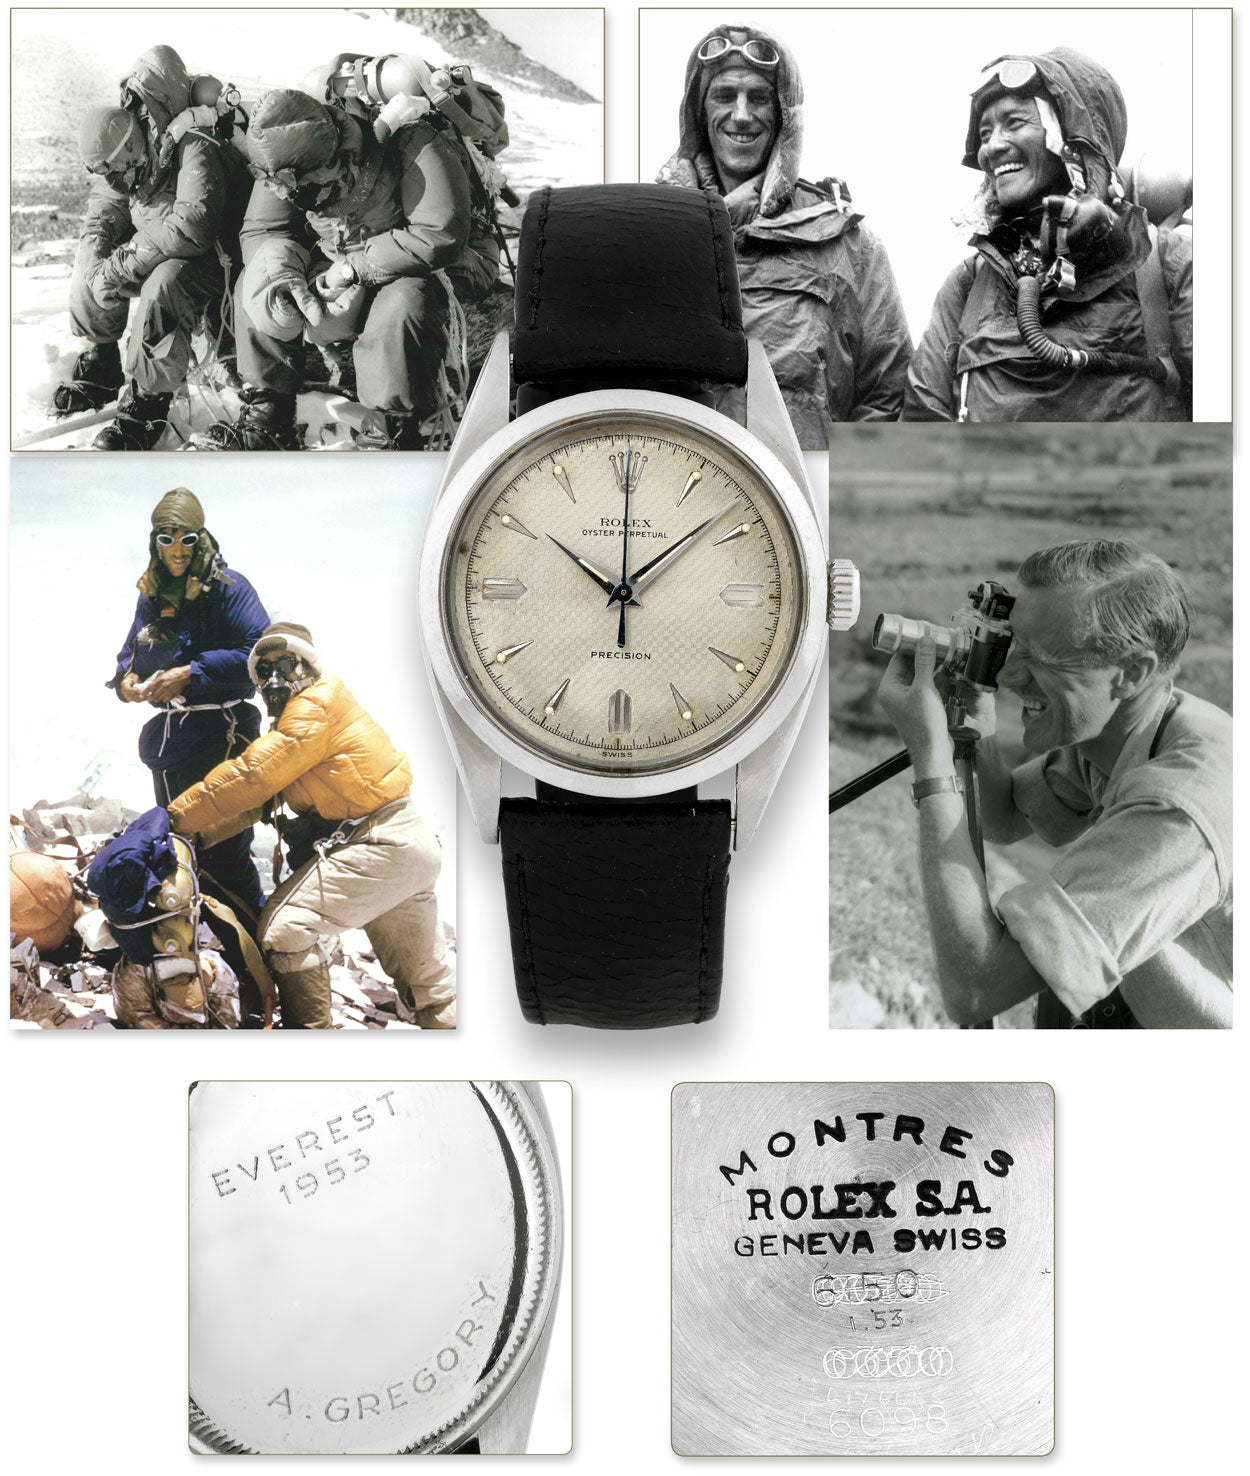 Climbers and their favorites, the Oyster Perpetual.